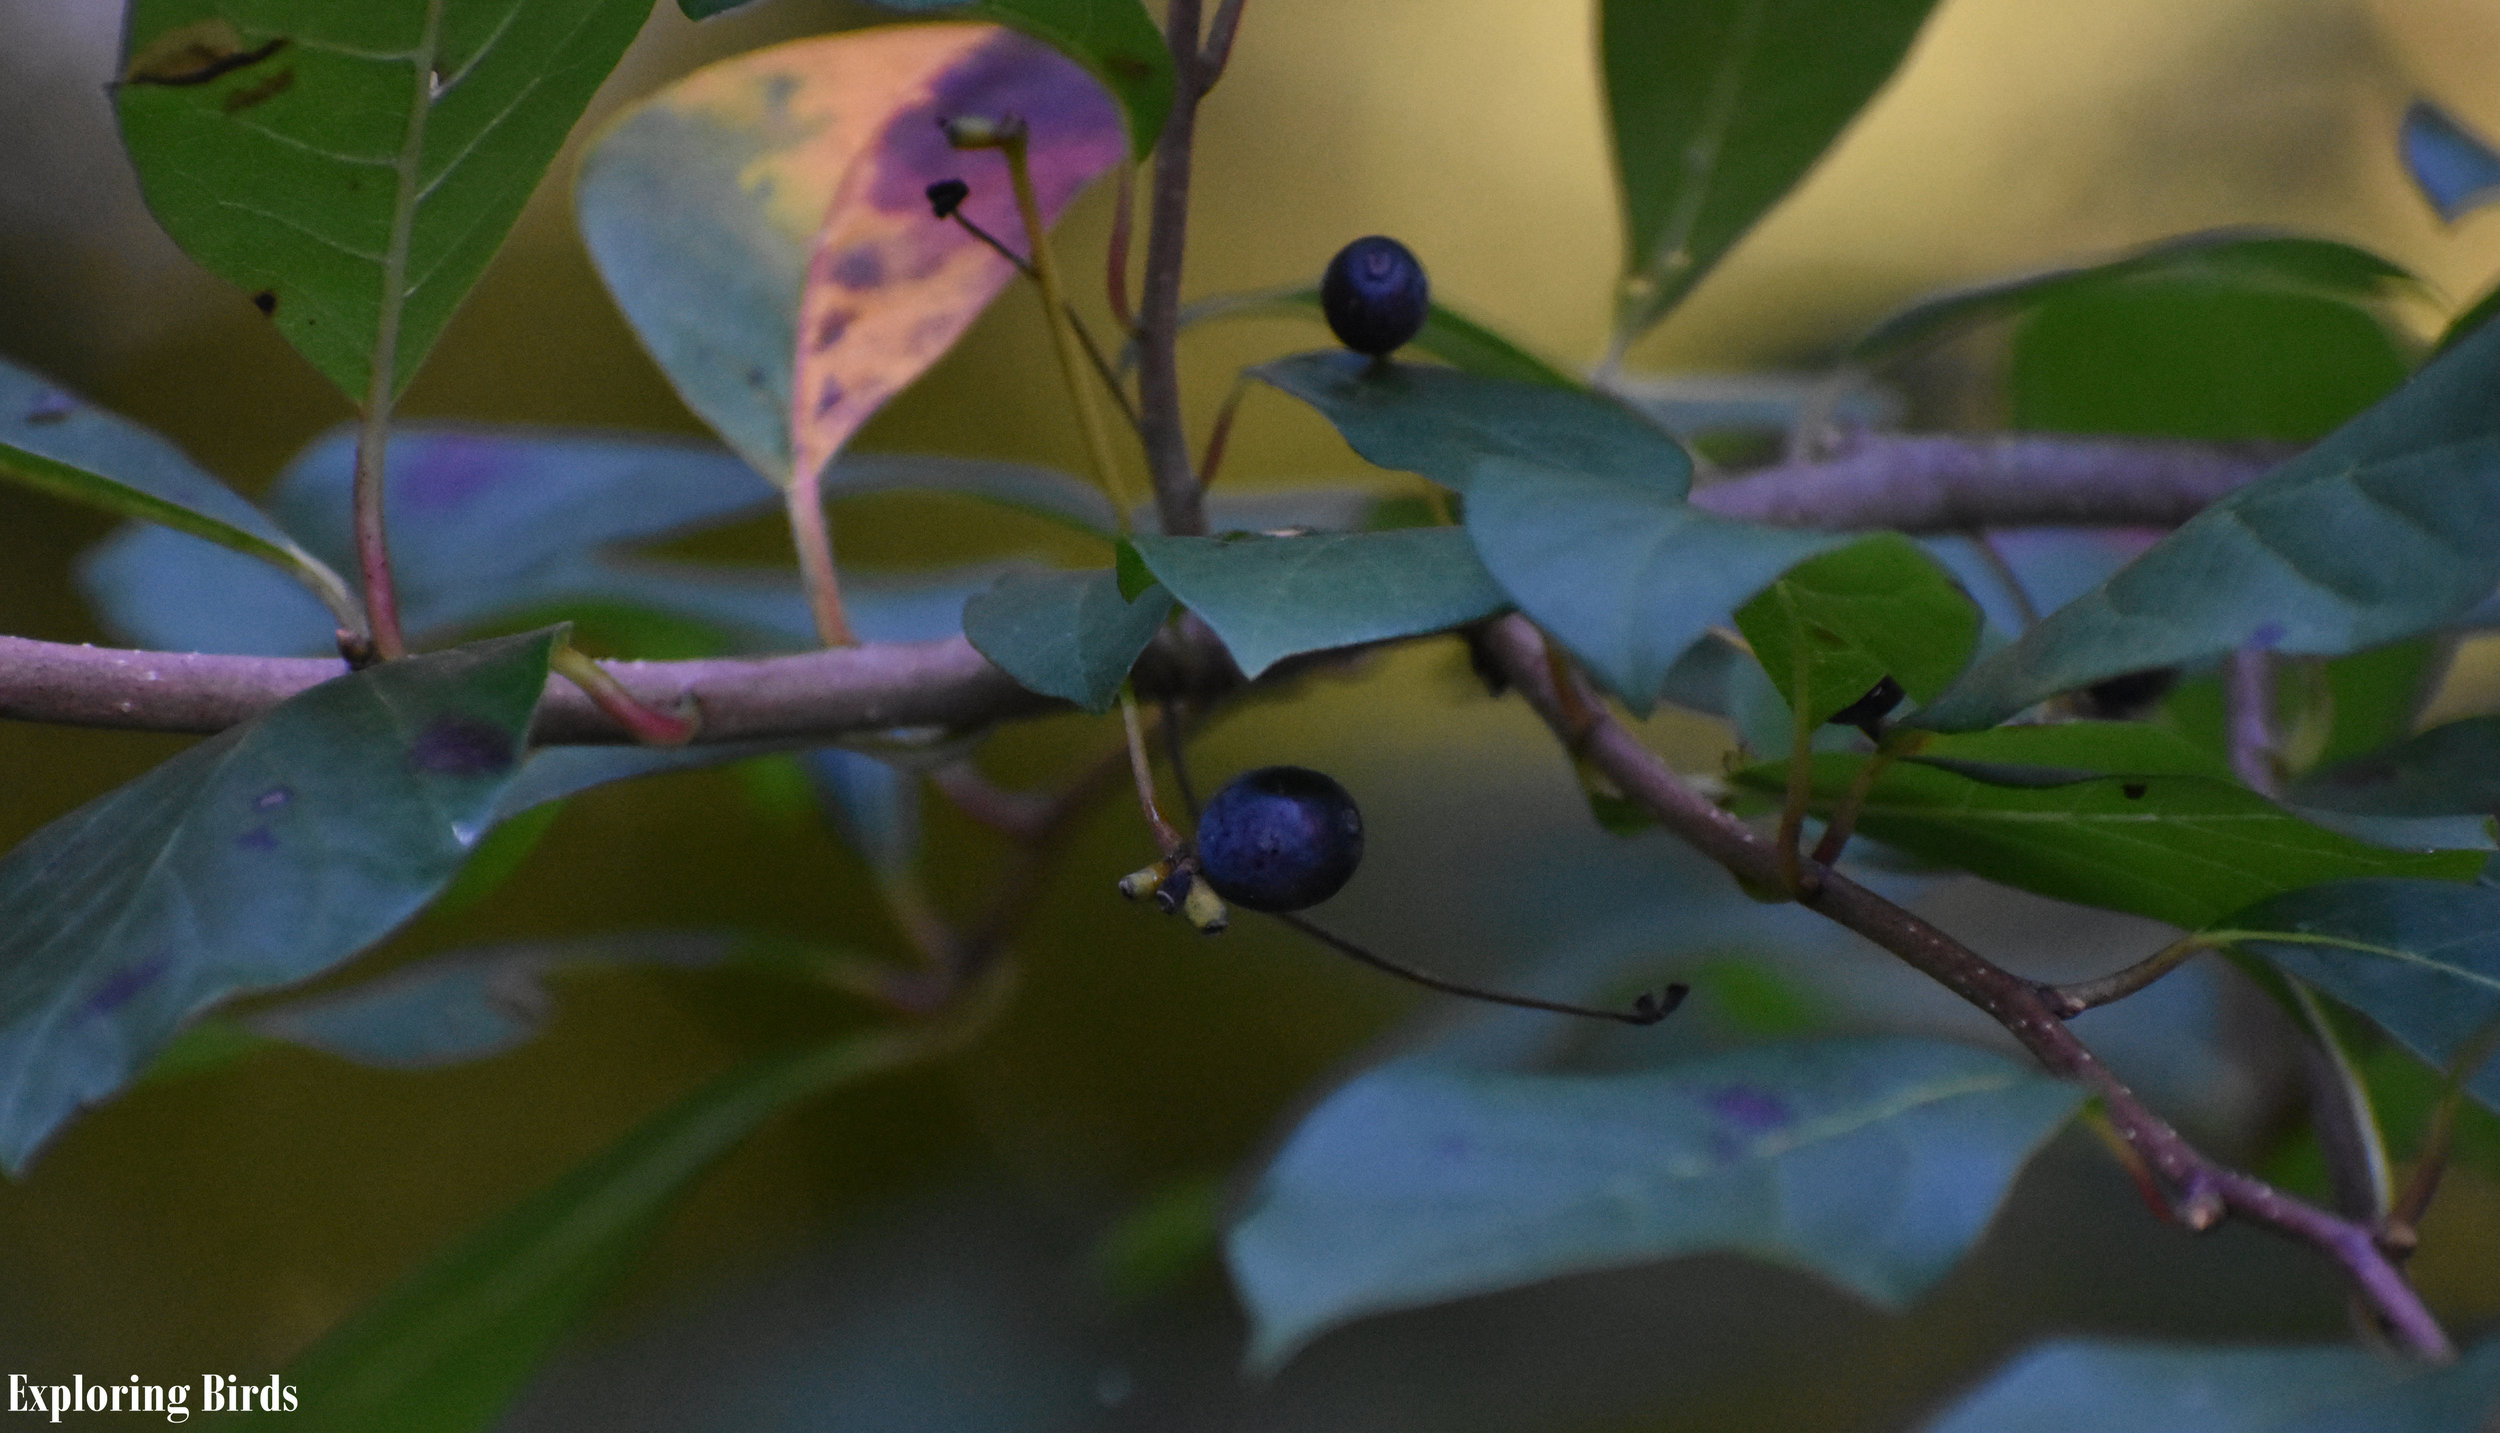 Blackgum is a tree that attracts birds